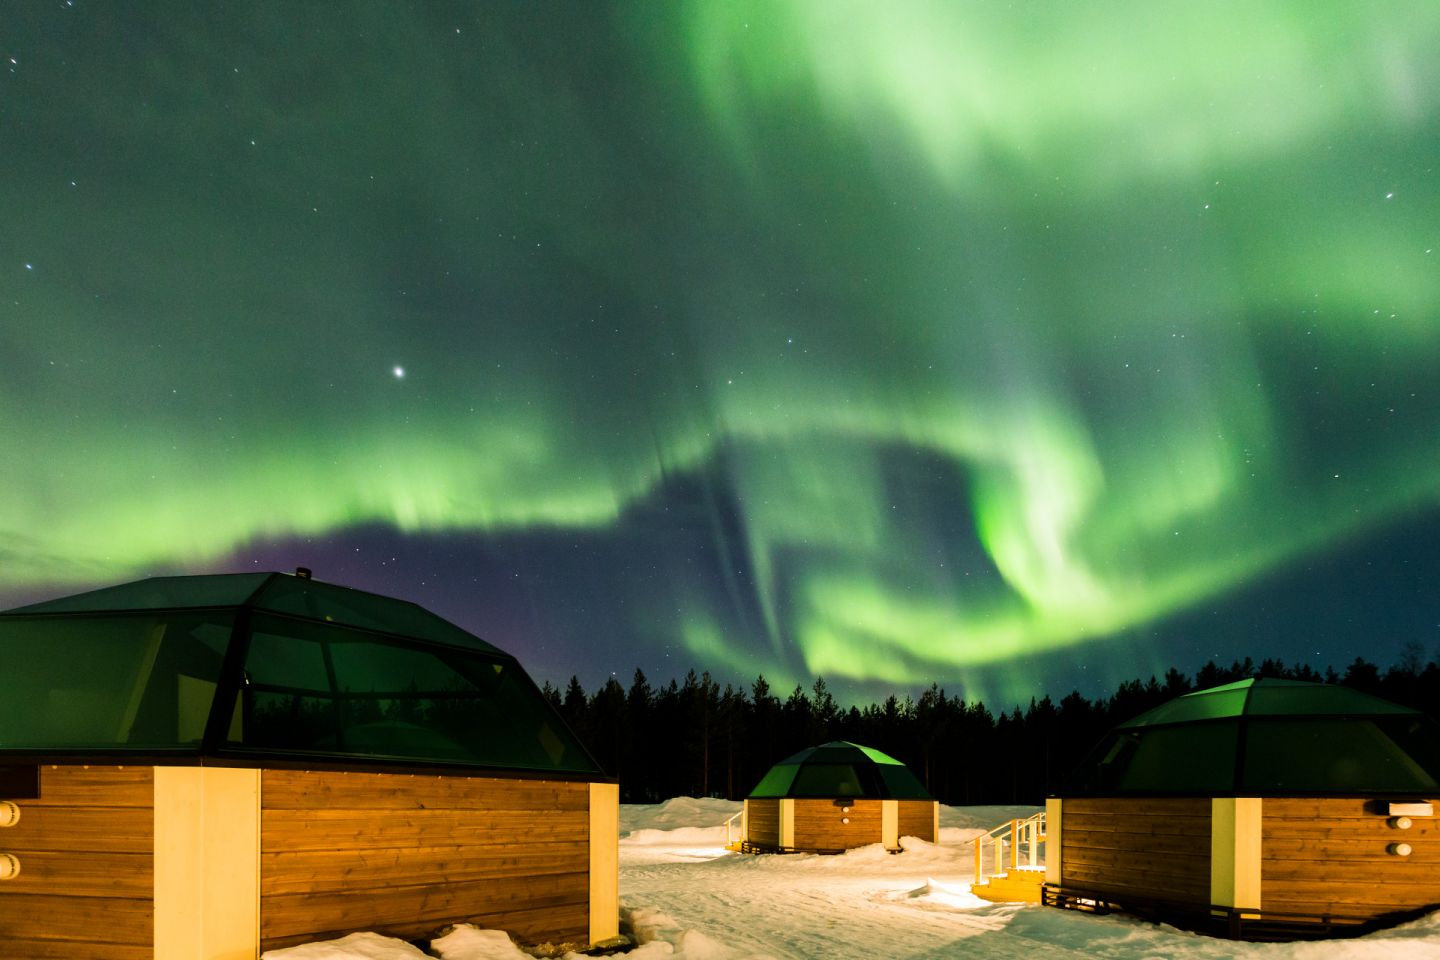 Auroras over glass igloos in Finnish Lapland